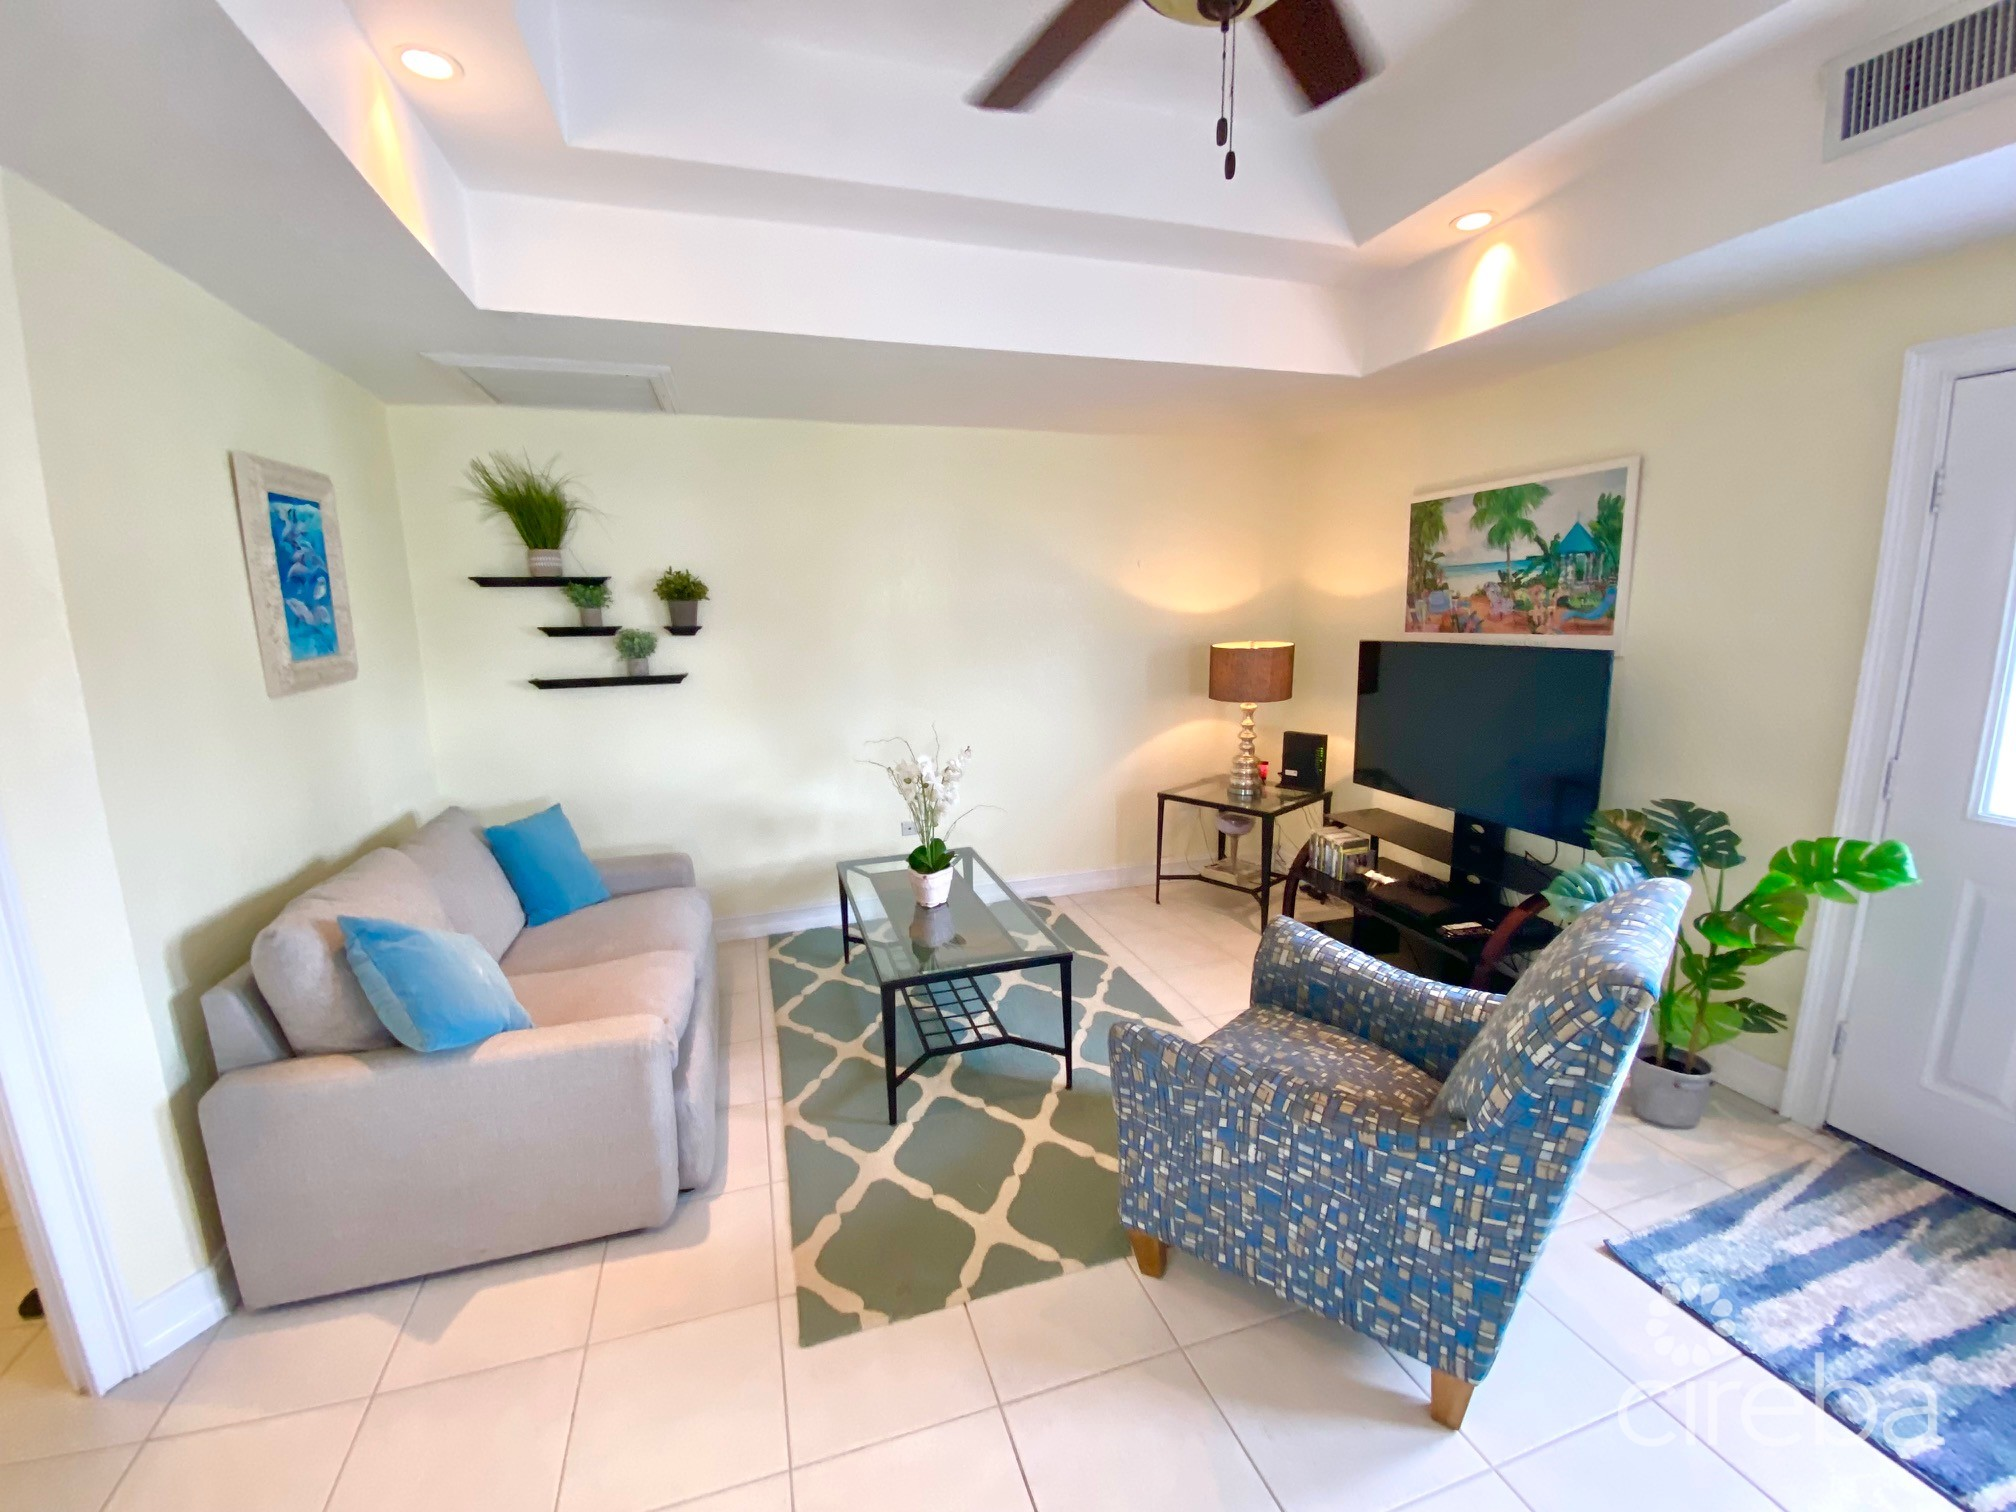 SUNRISE LANDING EXECUTIVE CANAL FRONT HOME